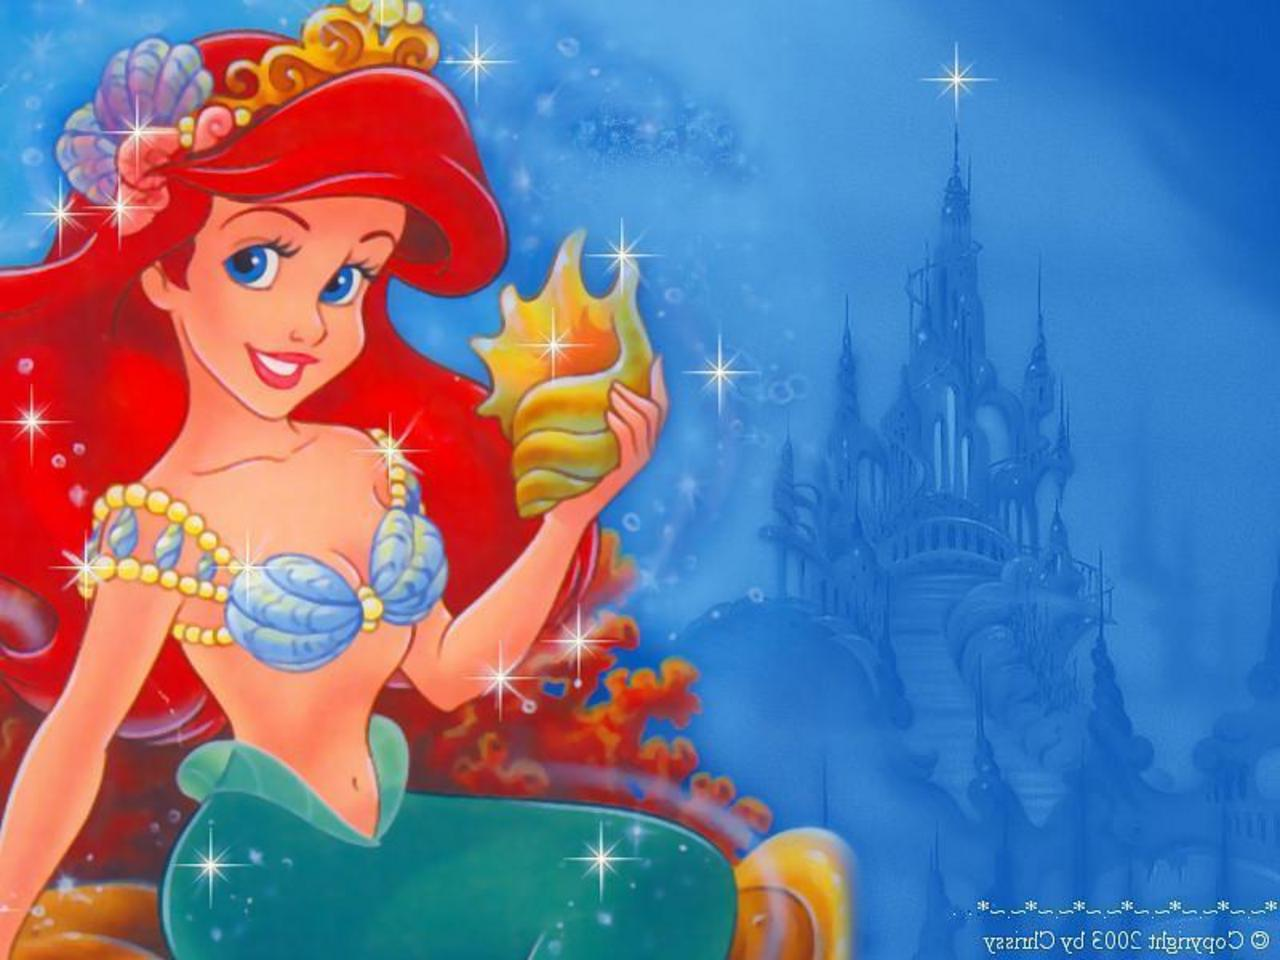 Princess Ariel From The Little Mermaid Tumblr Banners